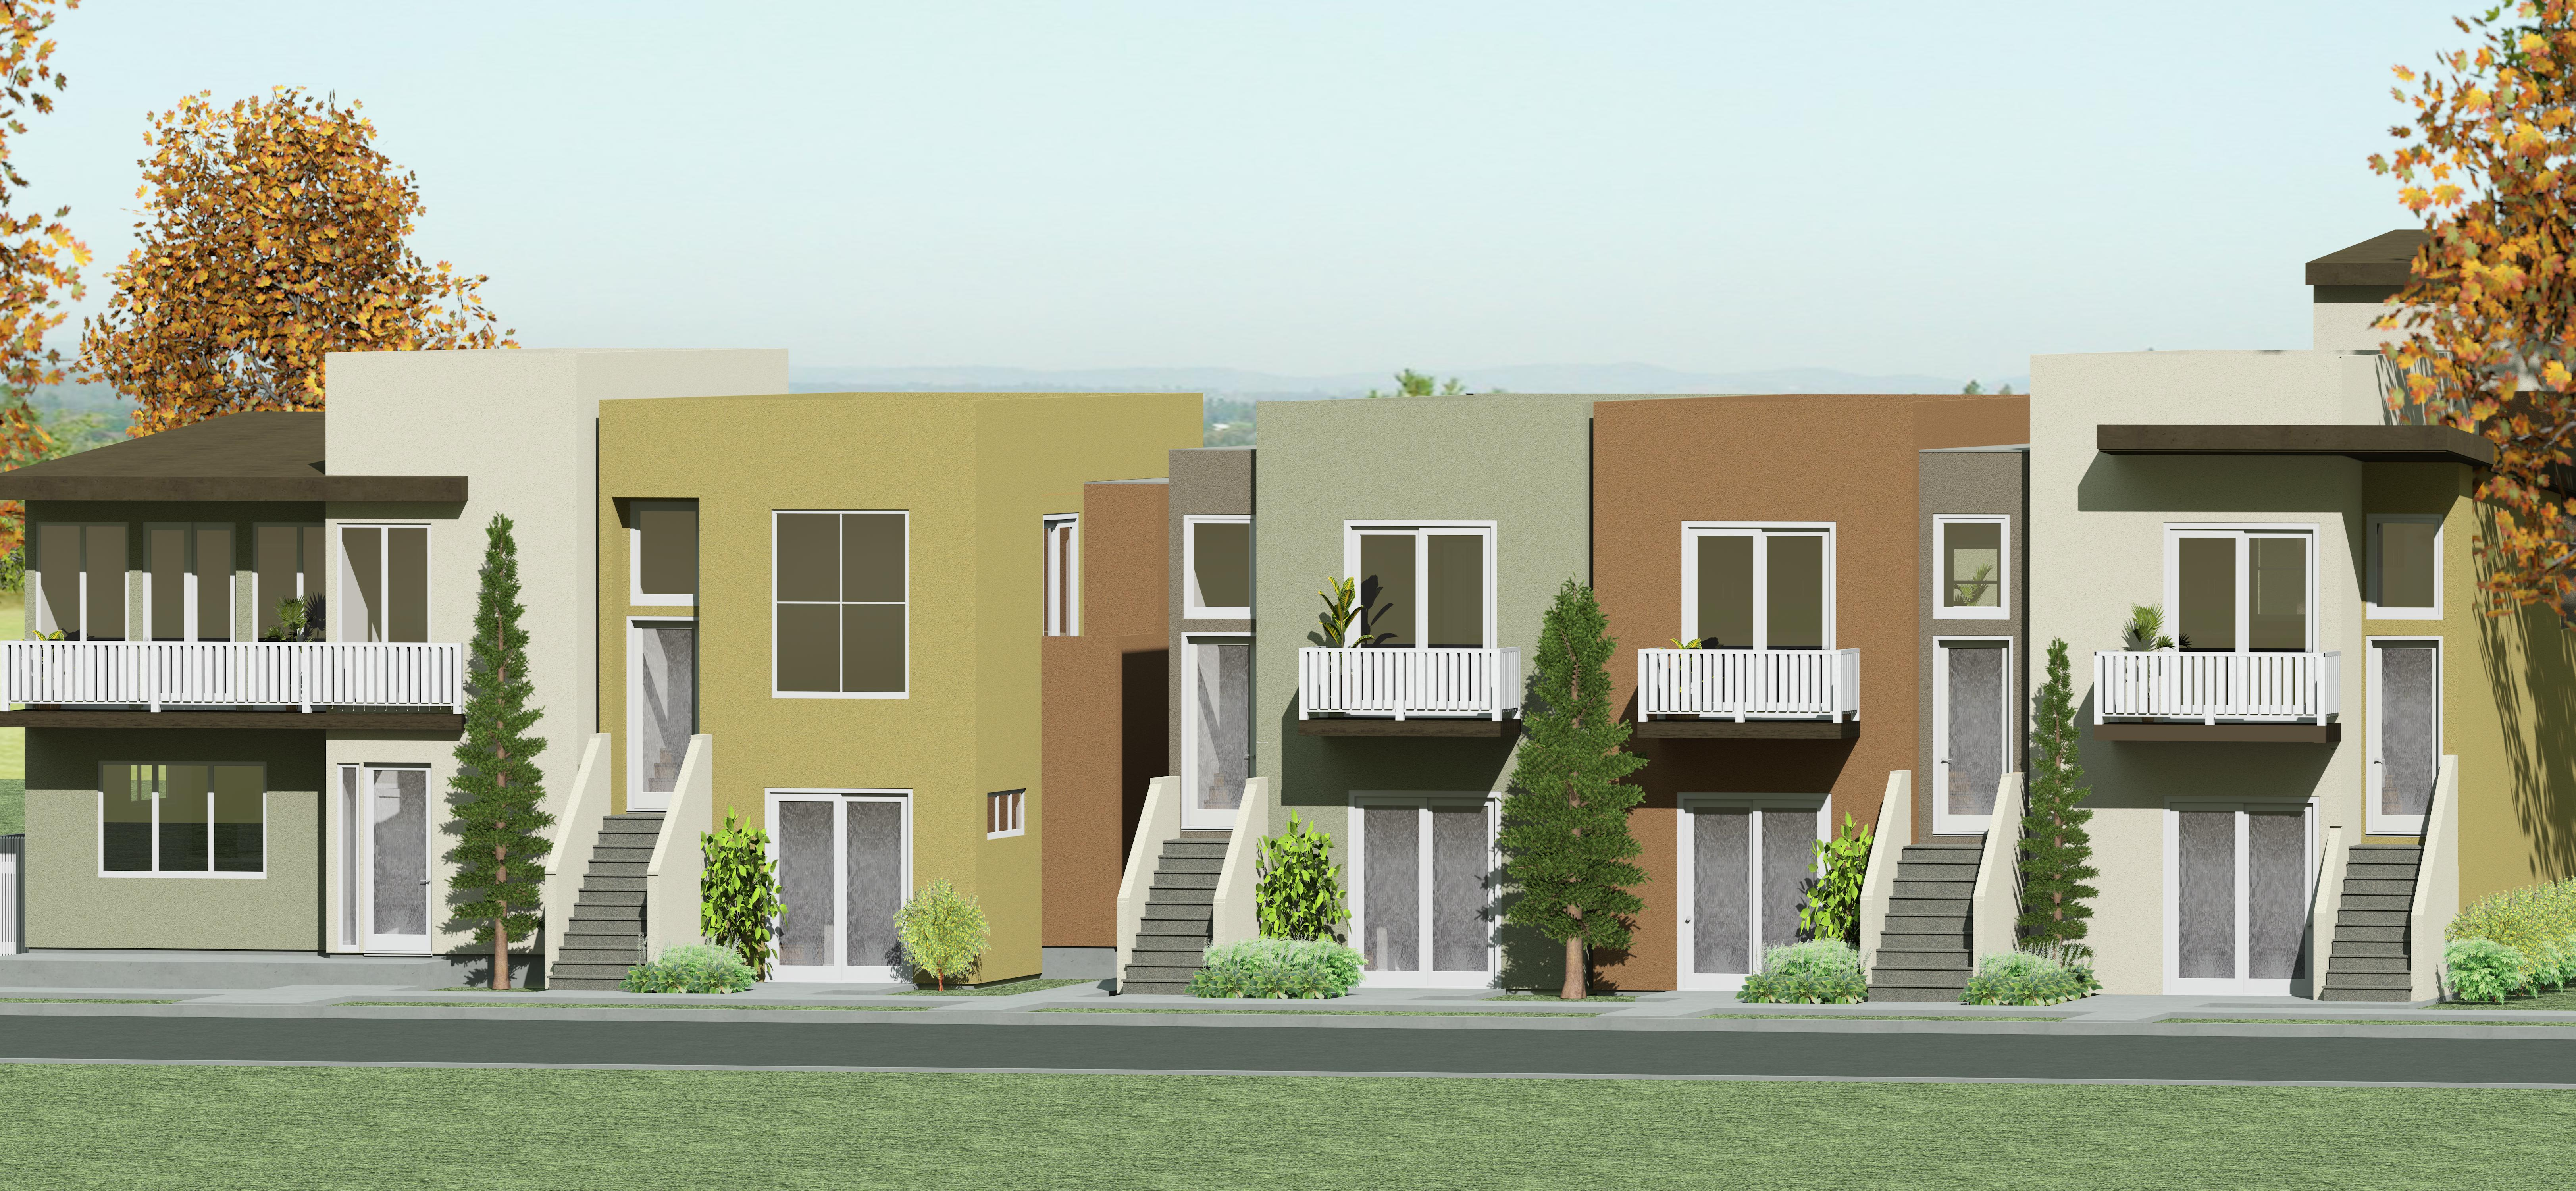 Grand opening of new row homes in national city ca for National house builders